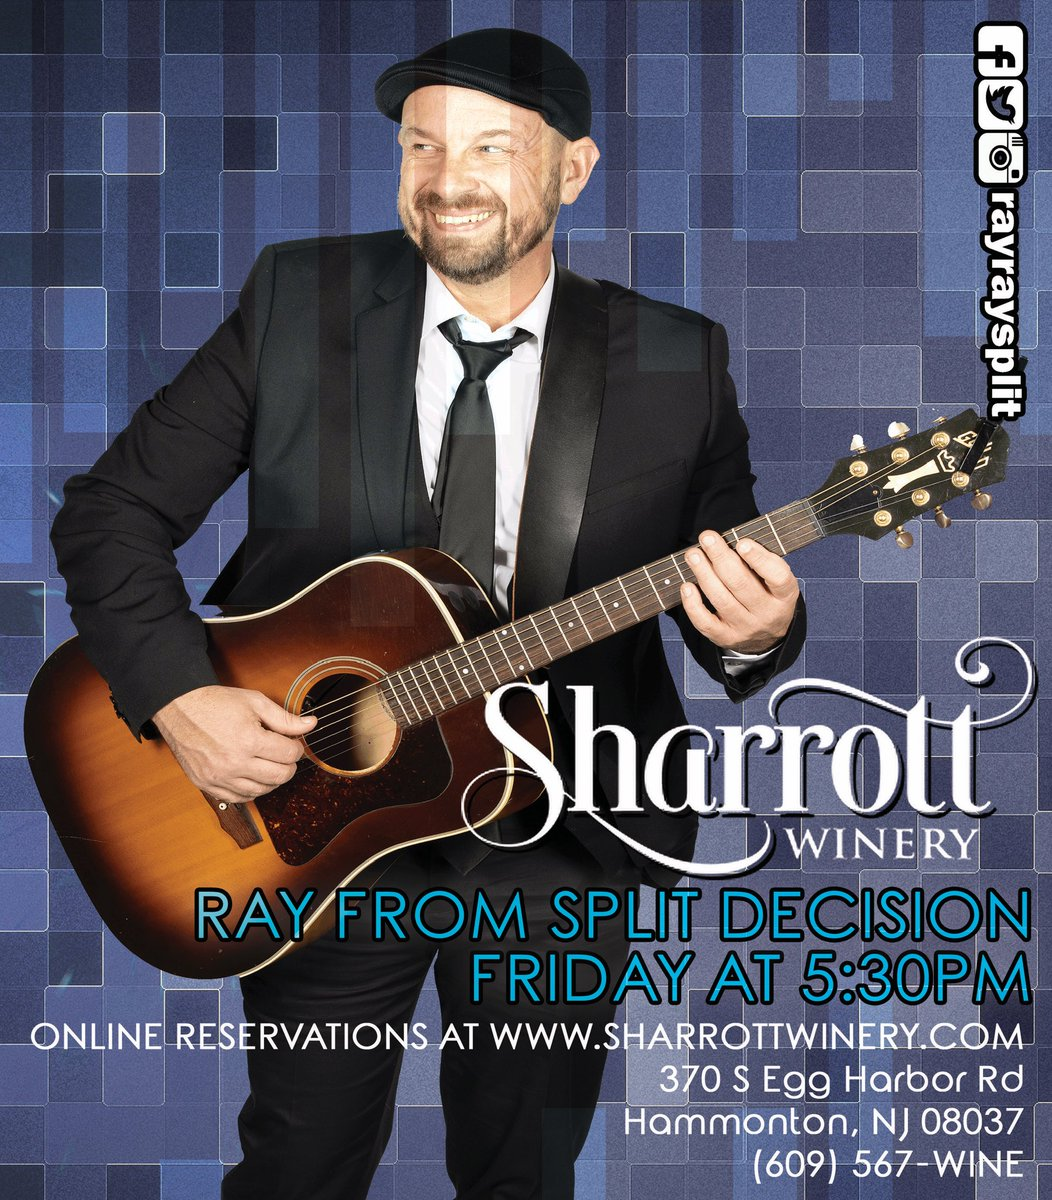 I'll be at @sharrottwinery this Friday, bright and early at 5:30pm!